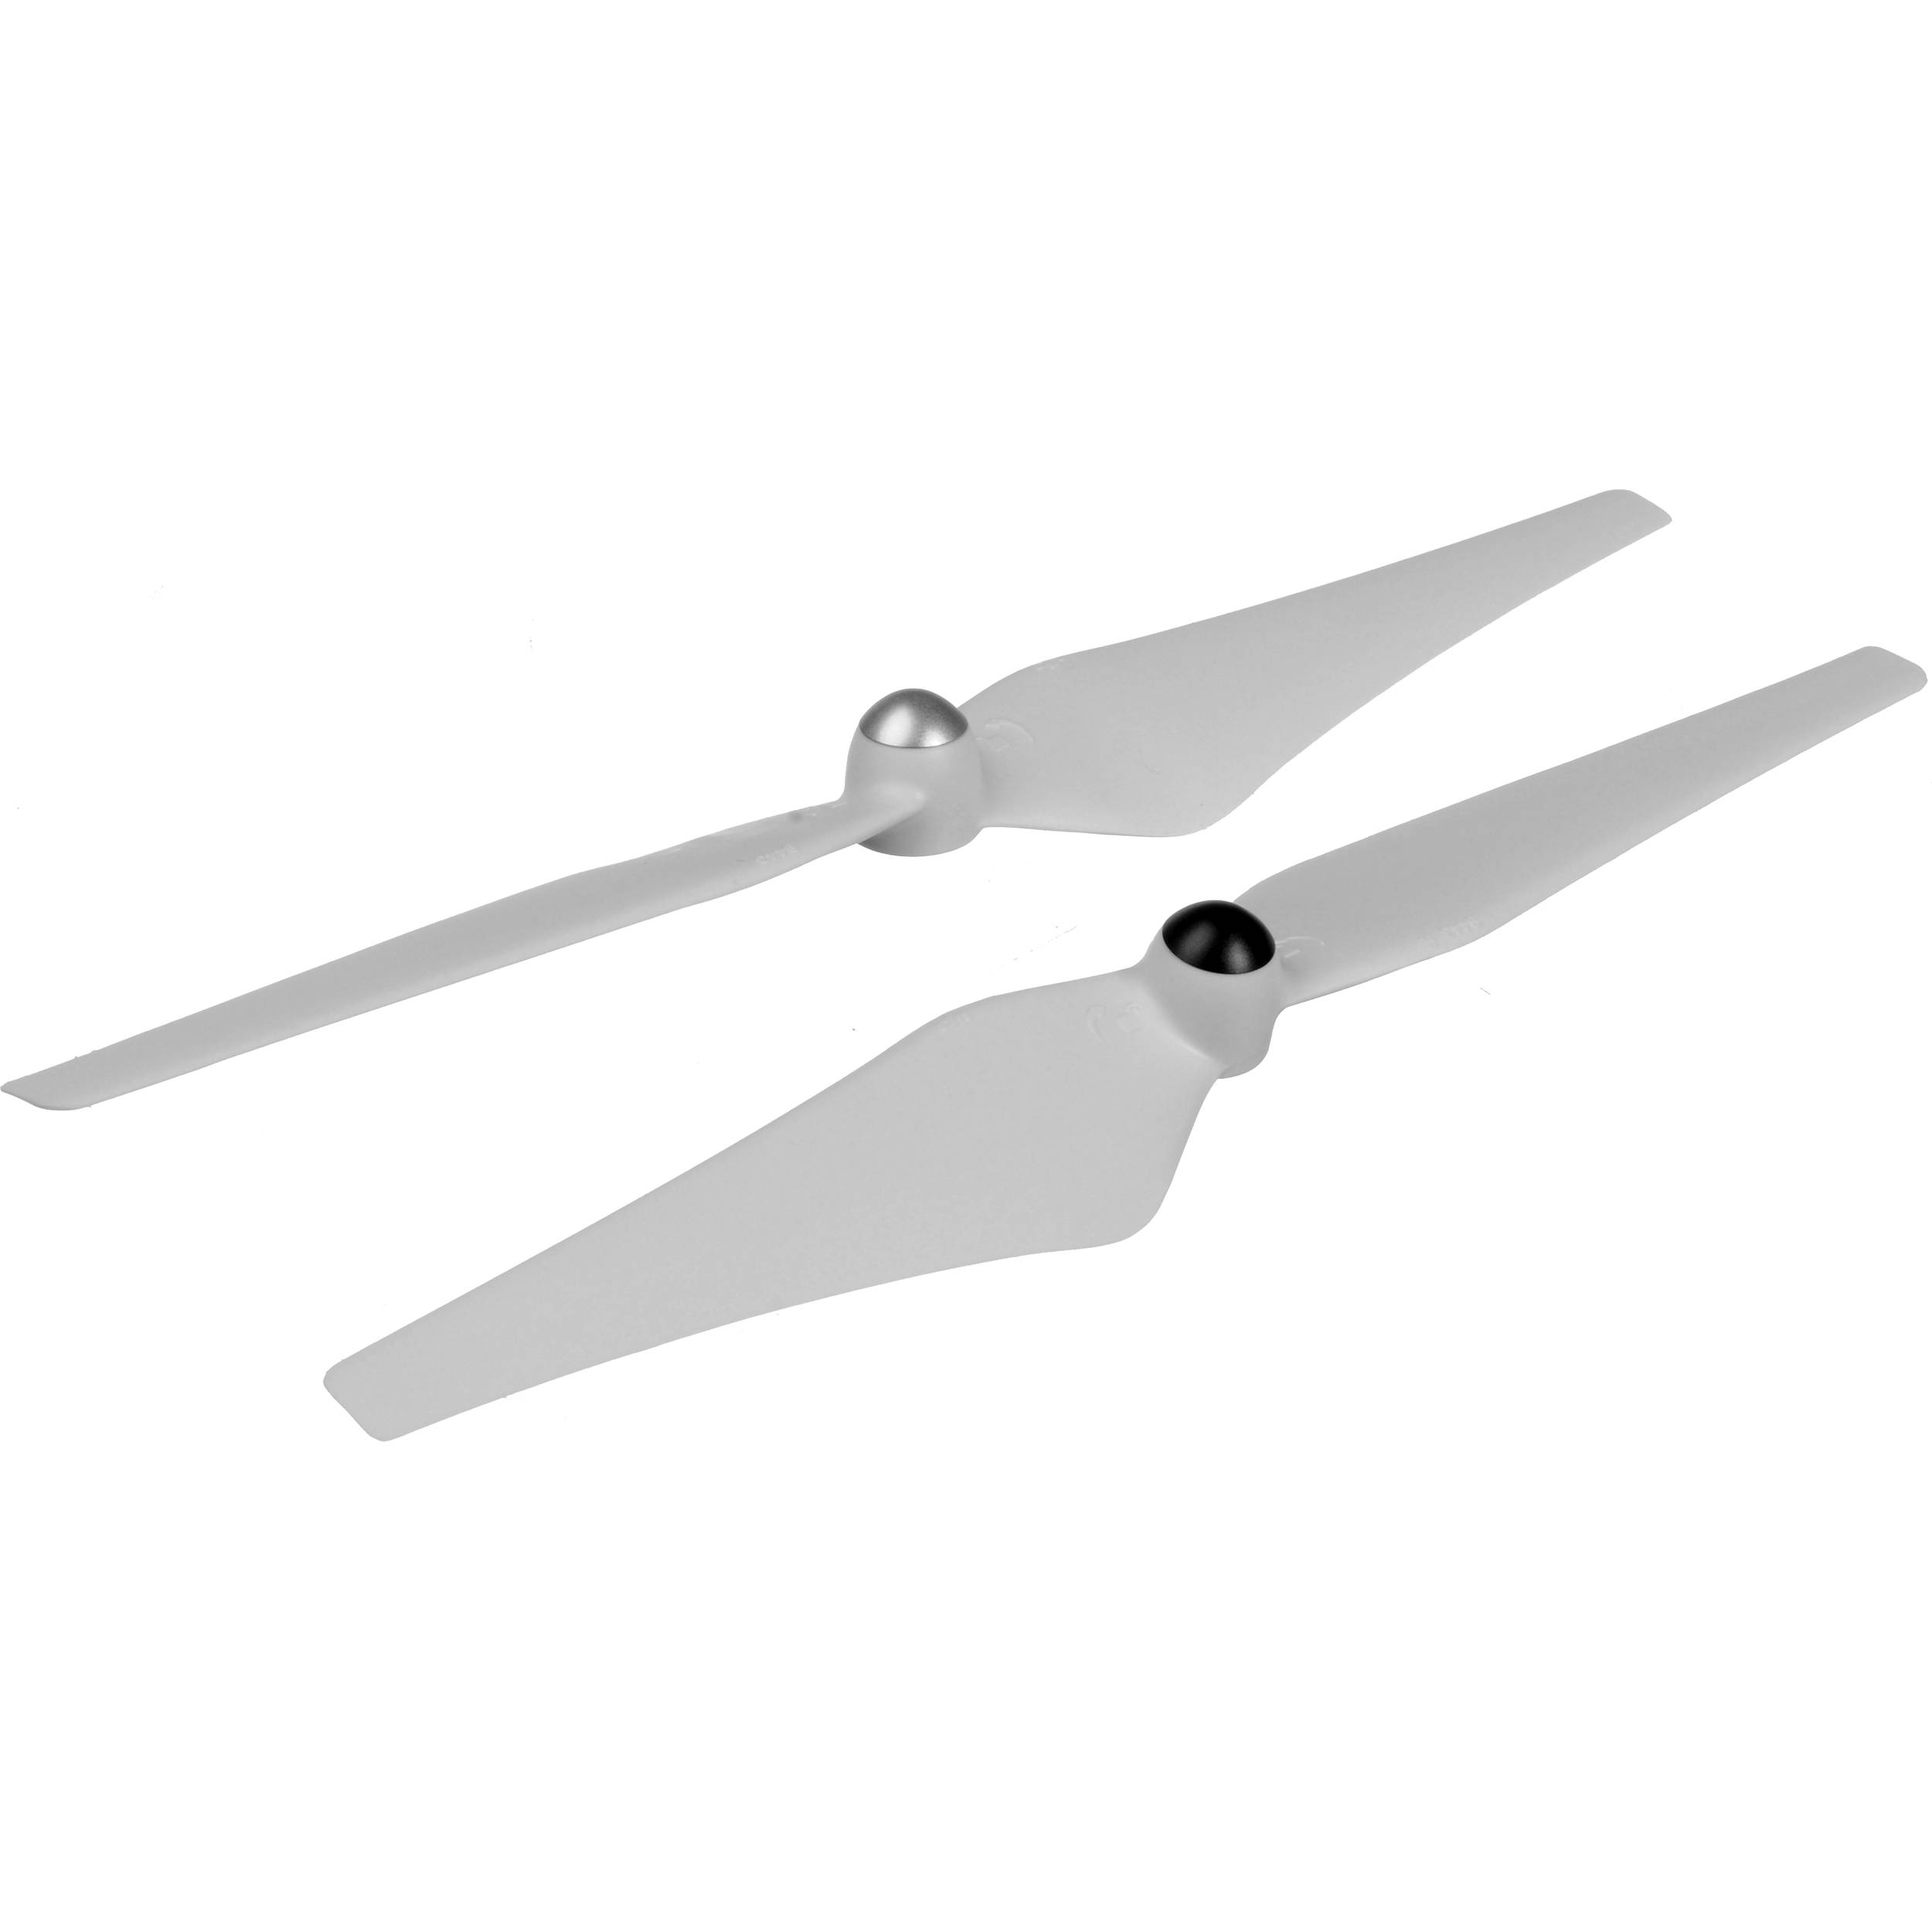 quadcopter photography with Dji Part3 Phanton 2 Self Tightening Propeller on 1901433 32591623094 in addition Dfd F183 With Hd Camera likewise Estes Proto X Nano Quadcopter Review additionally Animal Eyes Photo Contest Finalists likewise Quadcopter Frames.